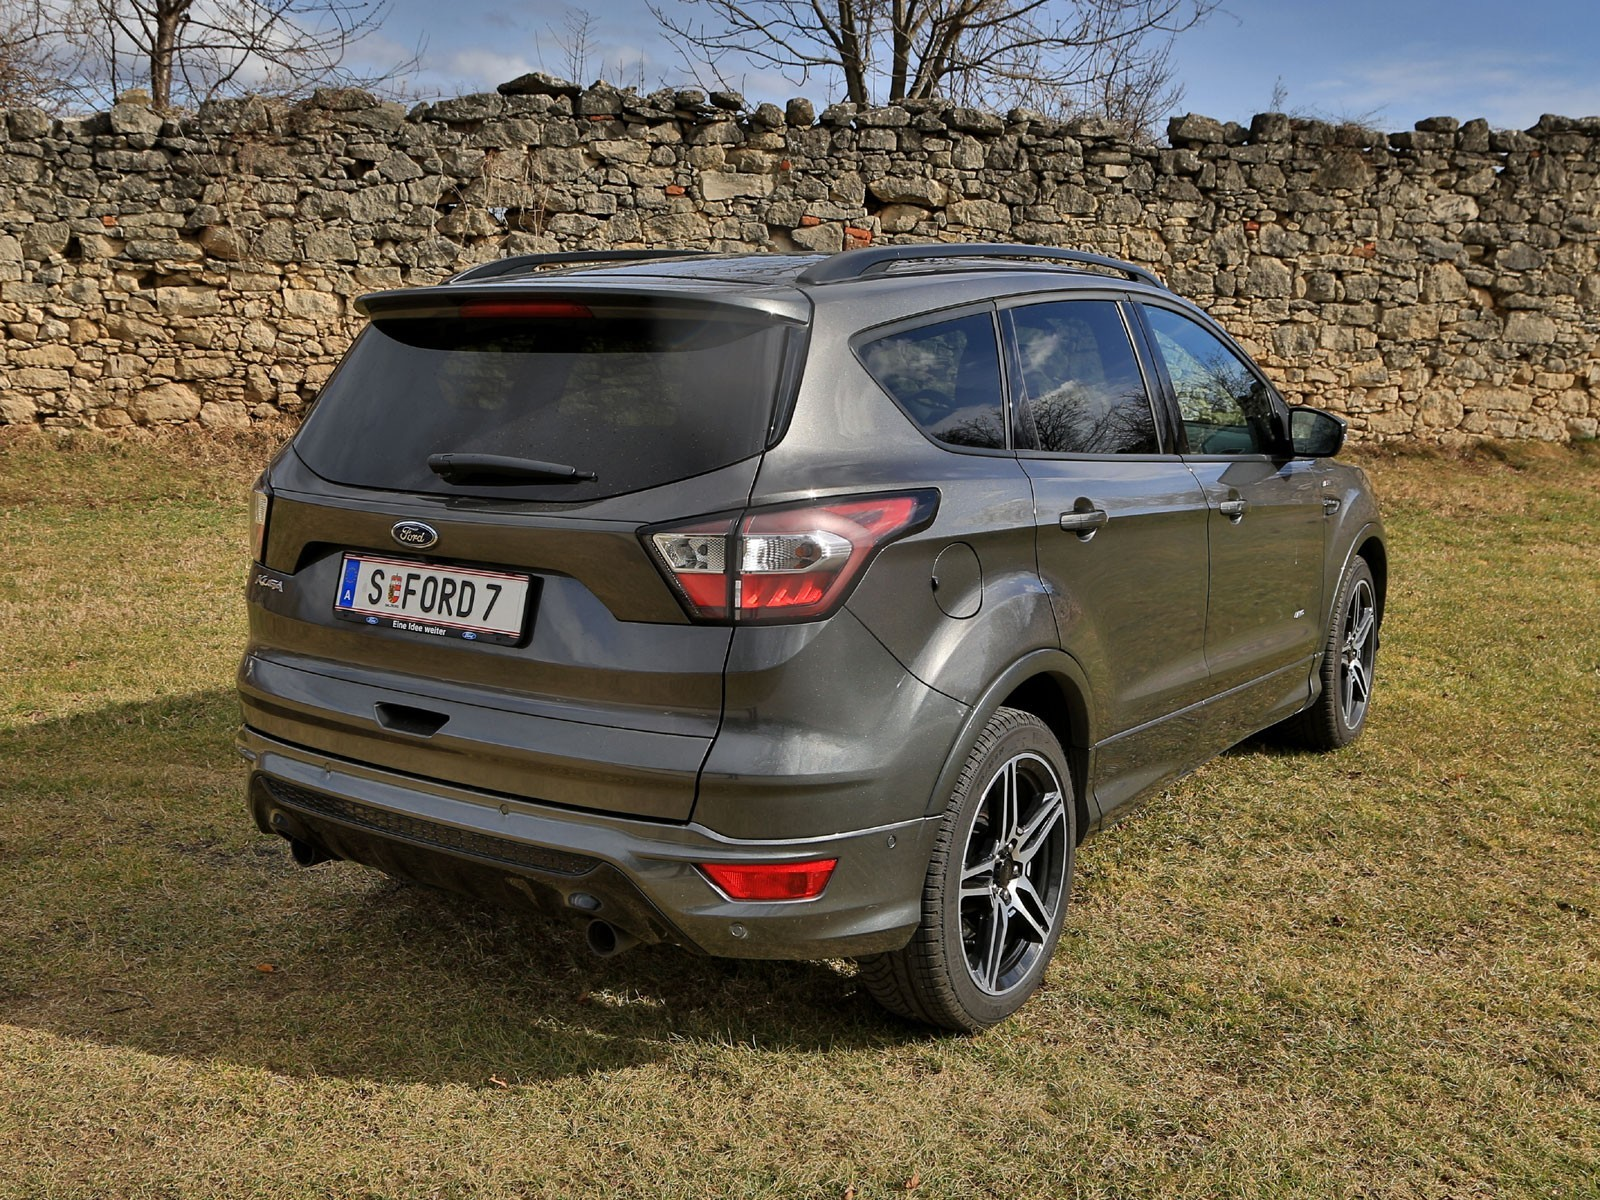 Ford kuga 2 0 tdci 150 ps at awd st line testbericht 002